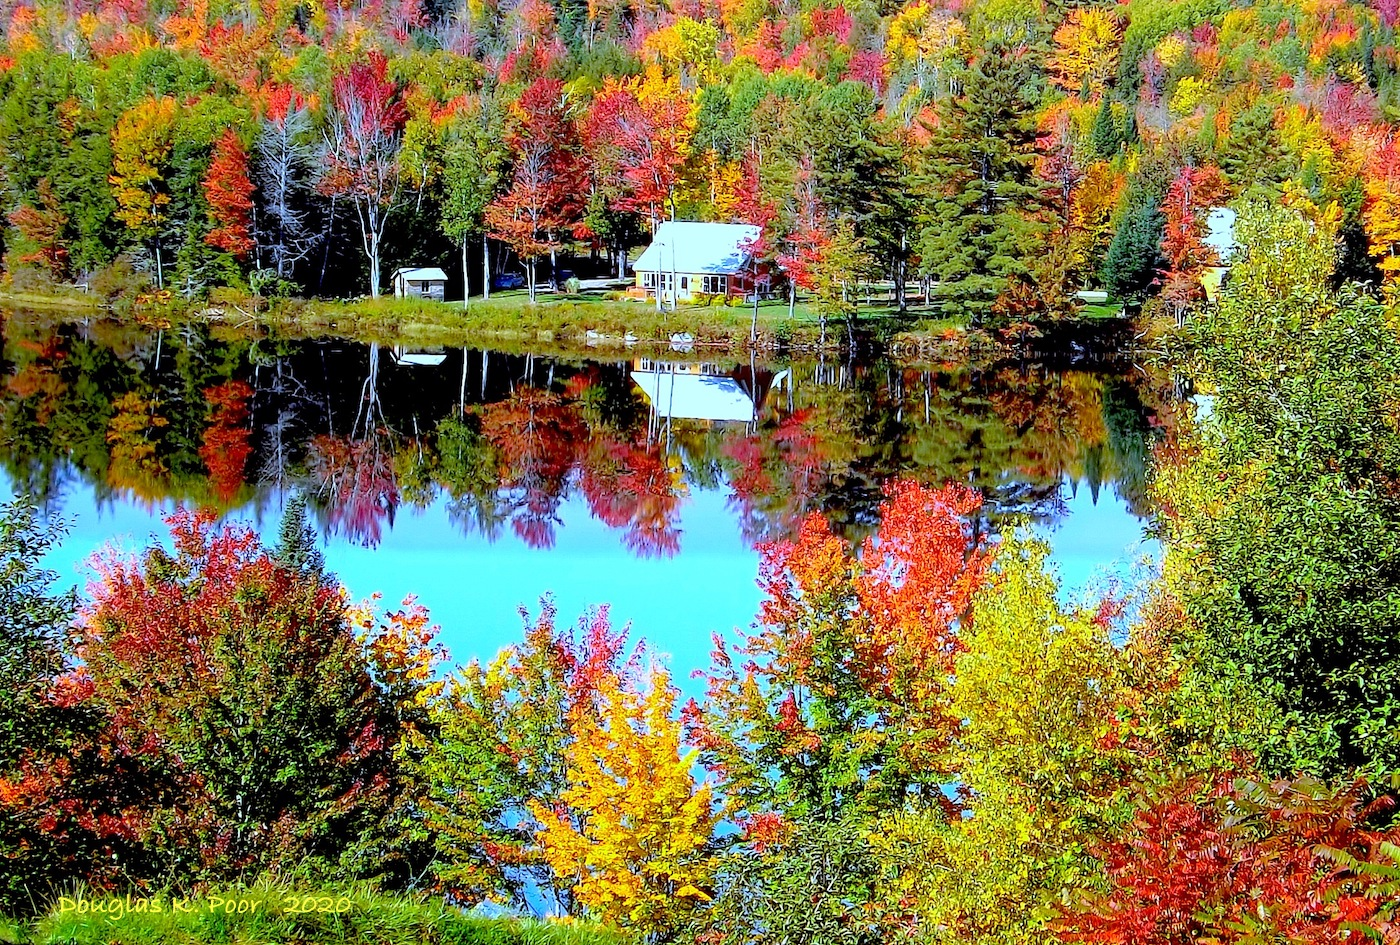 ==============================================================================================================================================================HOUSE-REFLECTIONS-AND-FOLIAGE